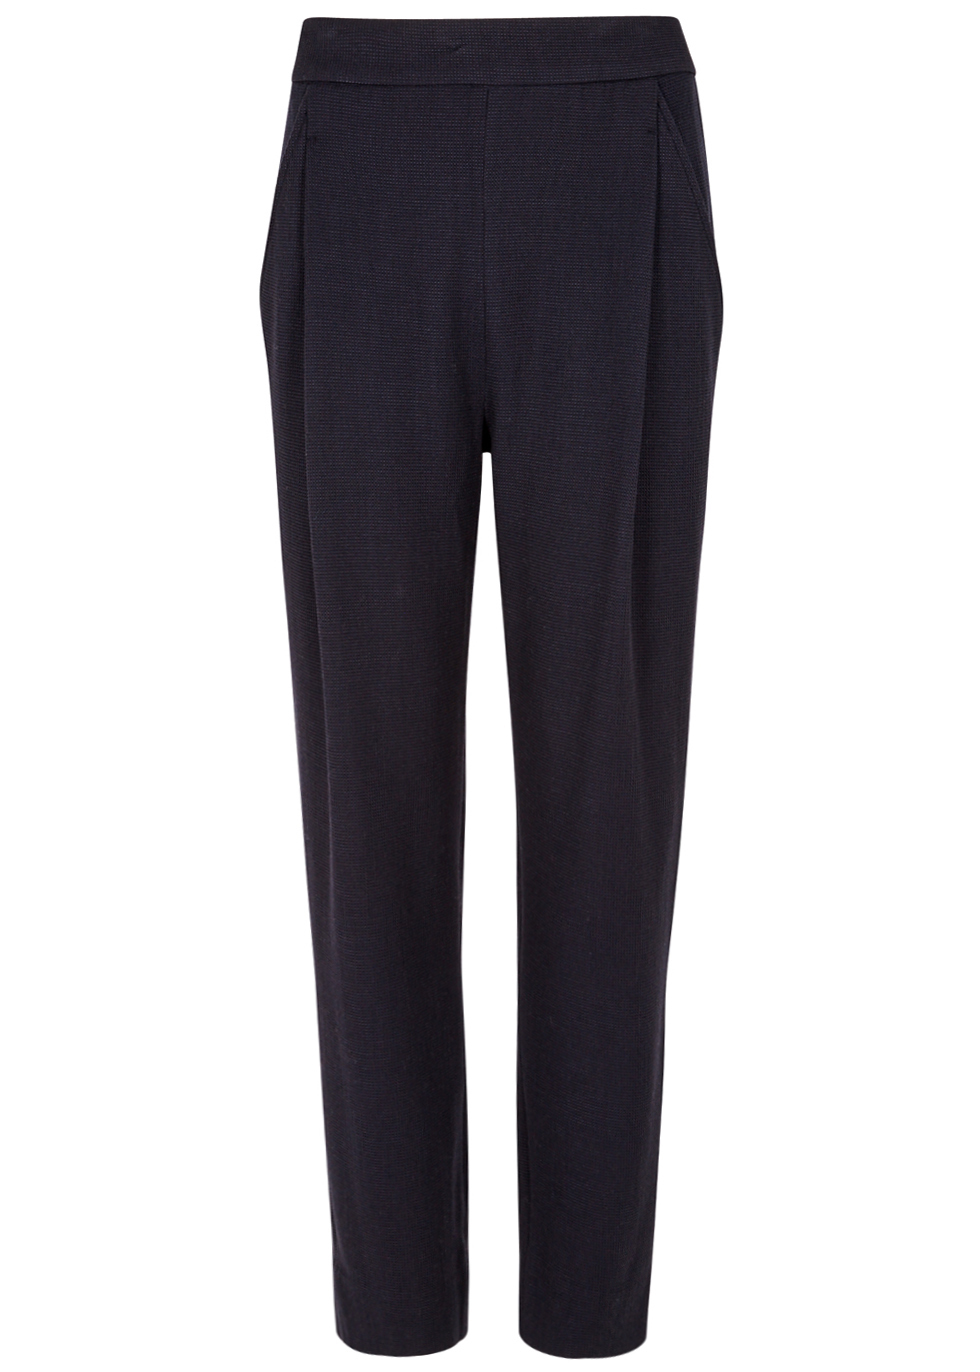 Navy Textured Wool Blend Trousers - length: standard; pattern: plain; waist: mid/regular rise; predominant colour: navy; occasions: work; fibres: wool - mix; waist detail: narrow waistband; fit: straight leg; pattern type: fabric; texture group: woven light midweight; style: standard; season: a/w 2016